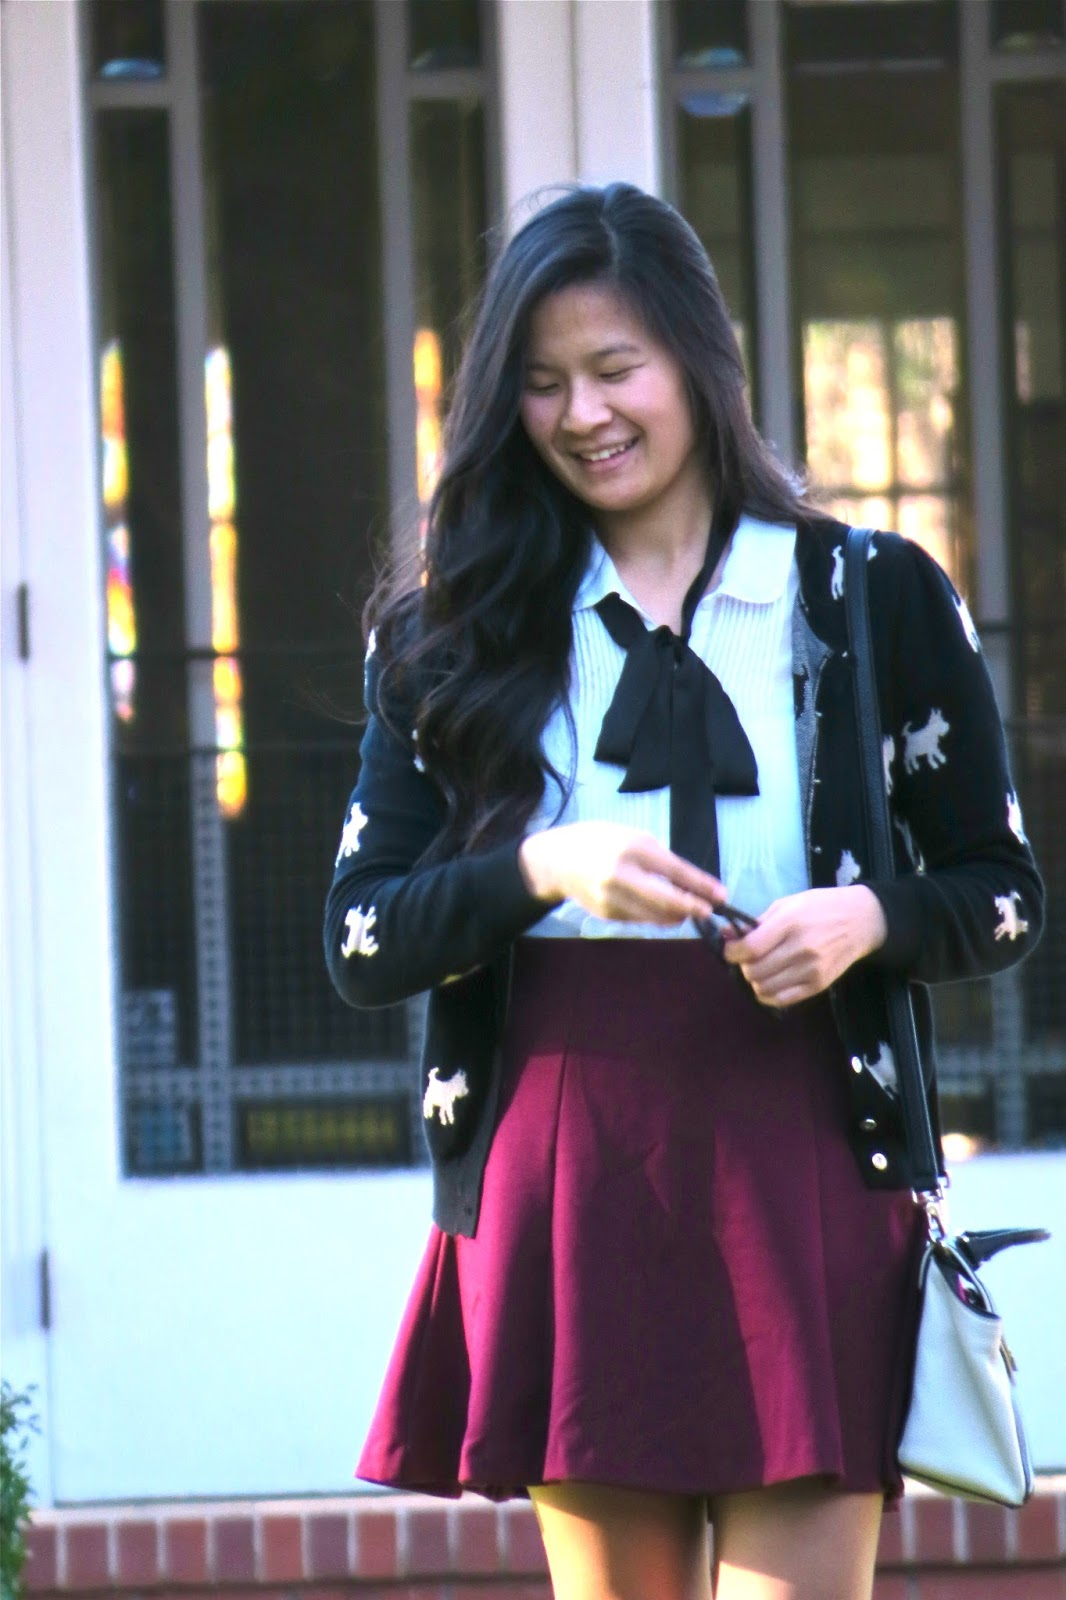 School_girl_inspired_outfit